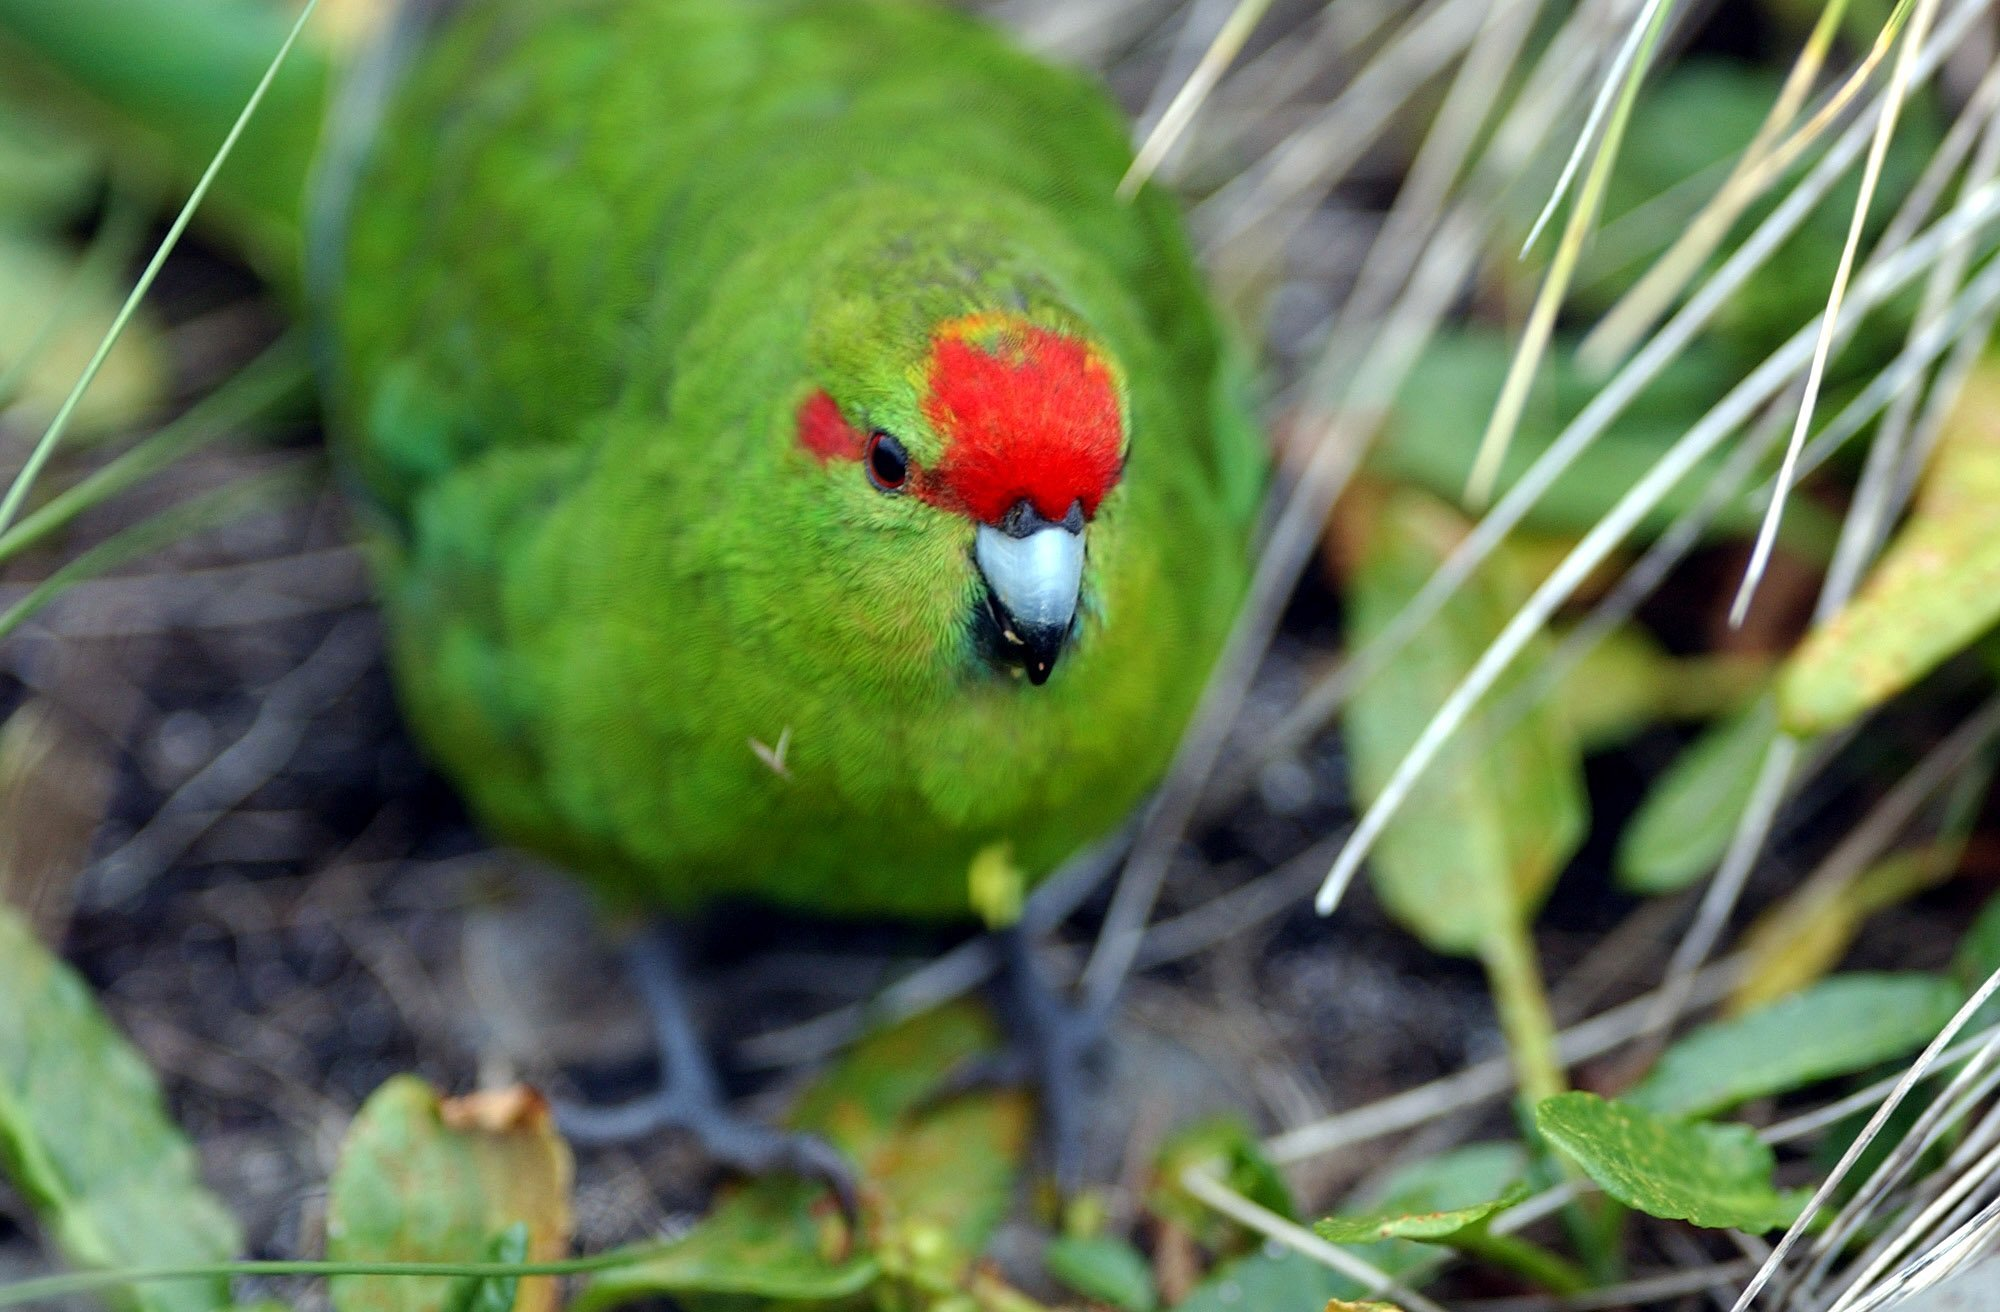 This bird was nearly extinct. Now, its population could double thanks to an 'epic' breeding season